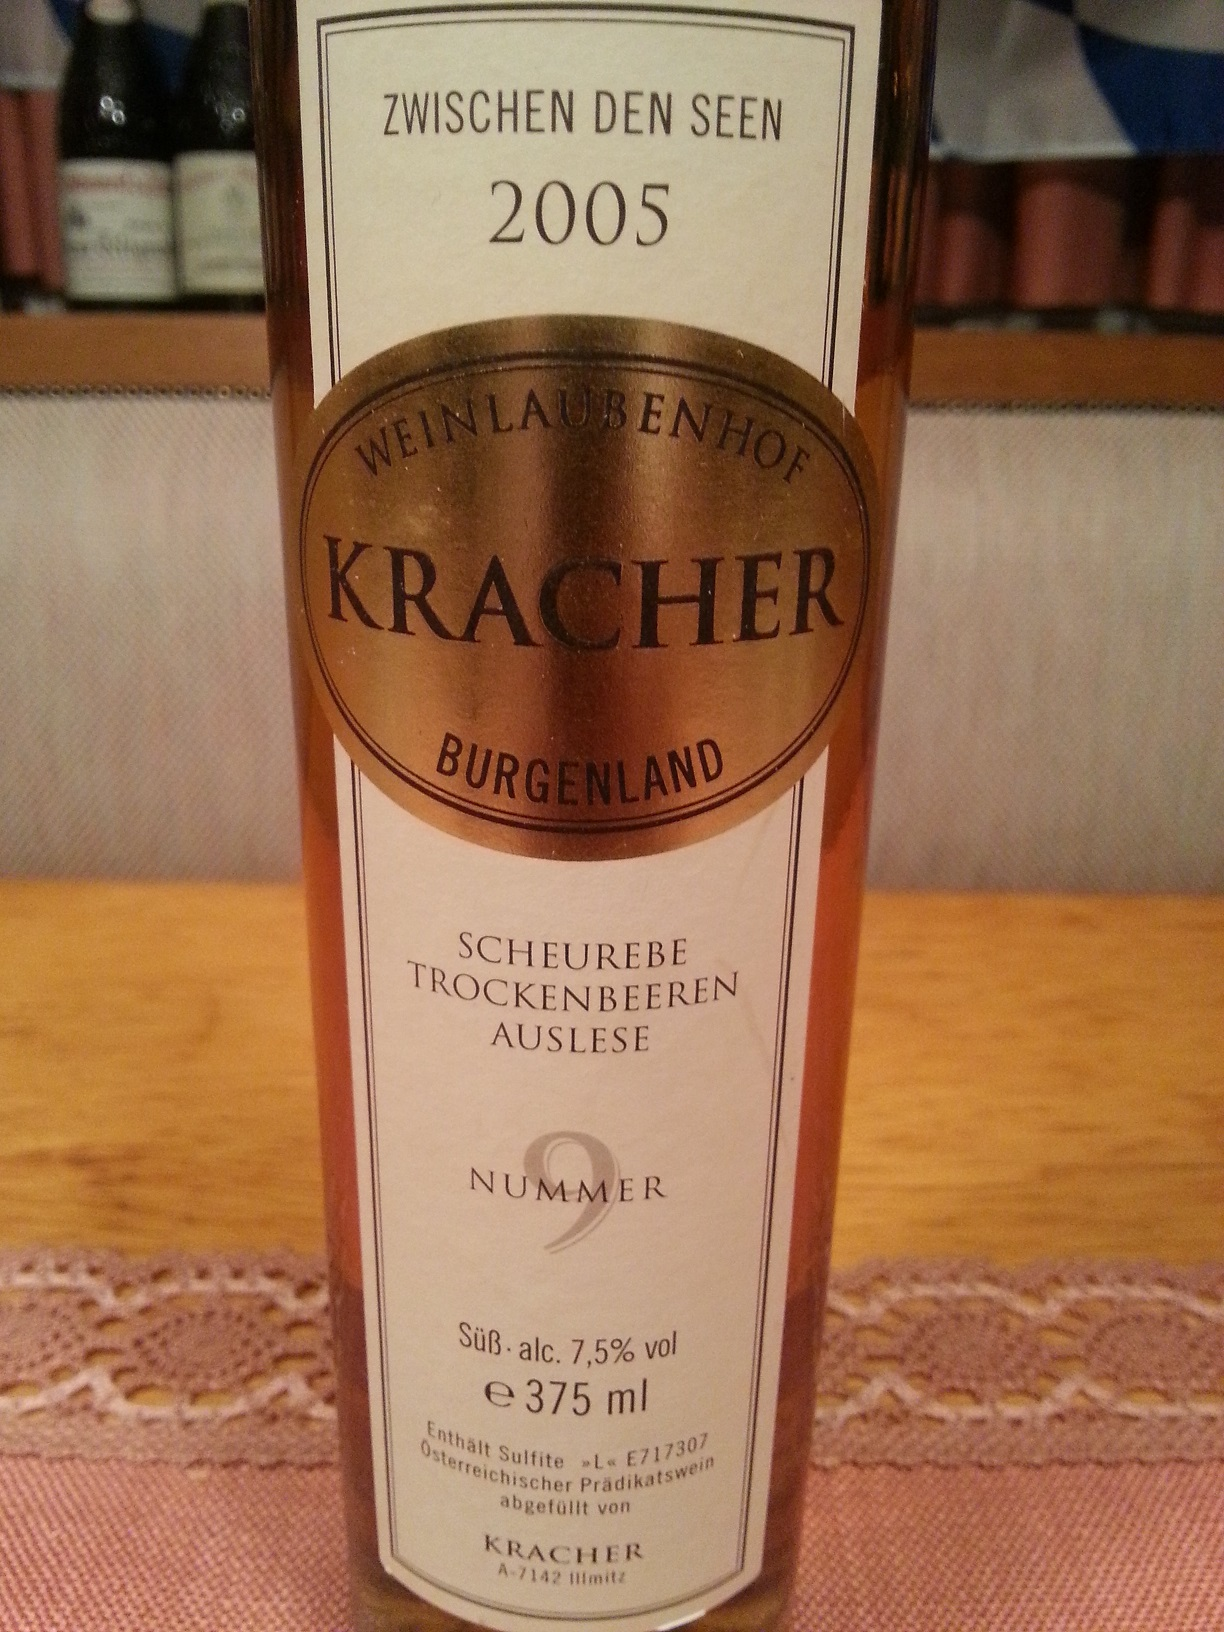 2005 Scheurebe TBA No. 9 ZdS | Kracher